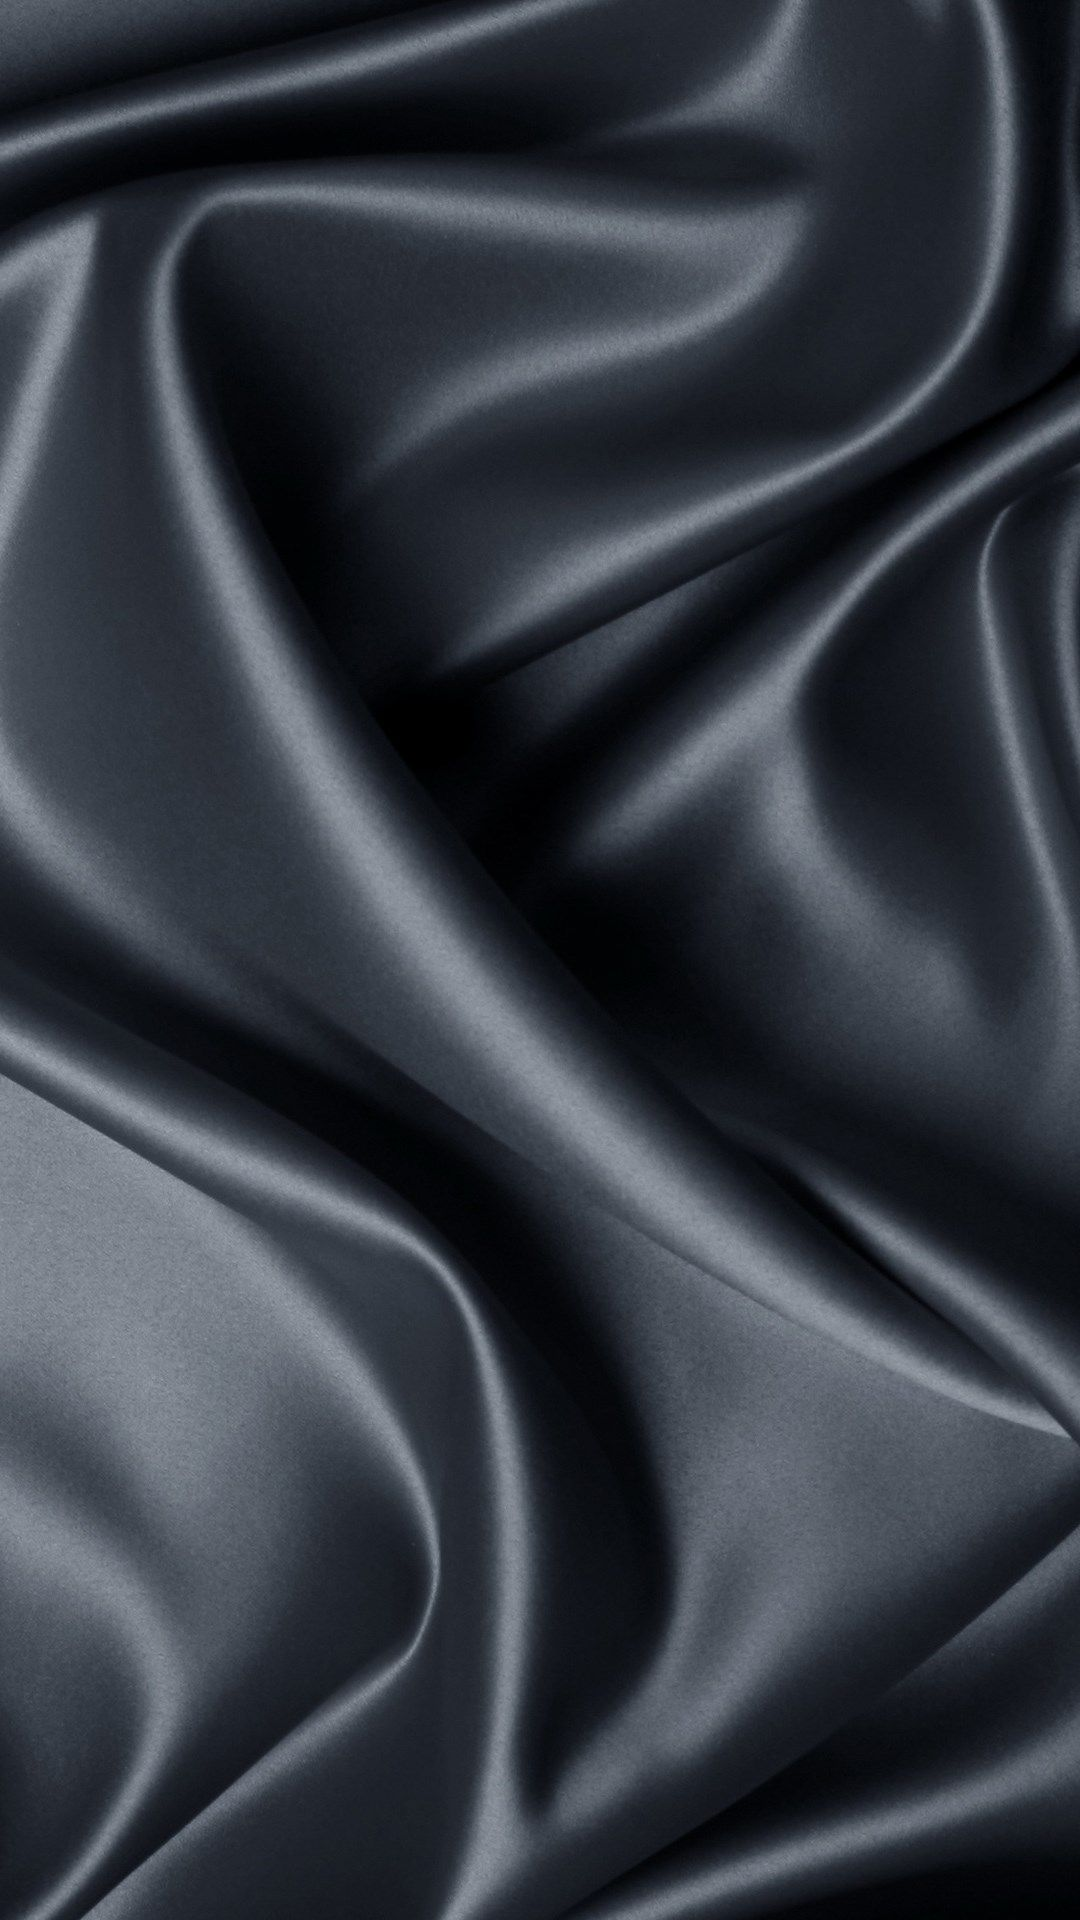 Black silk texture. Tap to see more Texture iPhone